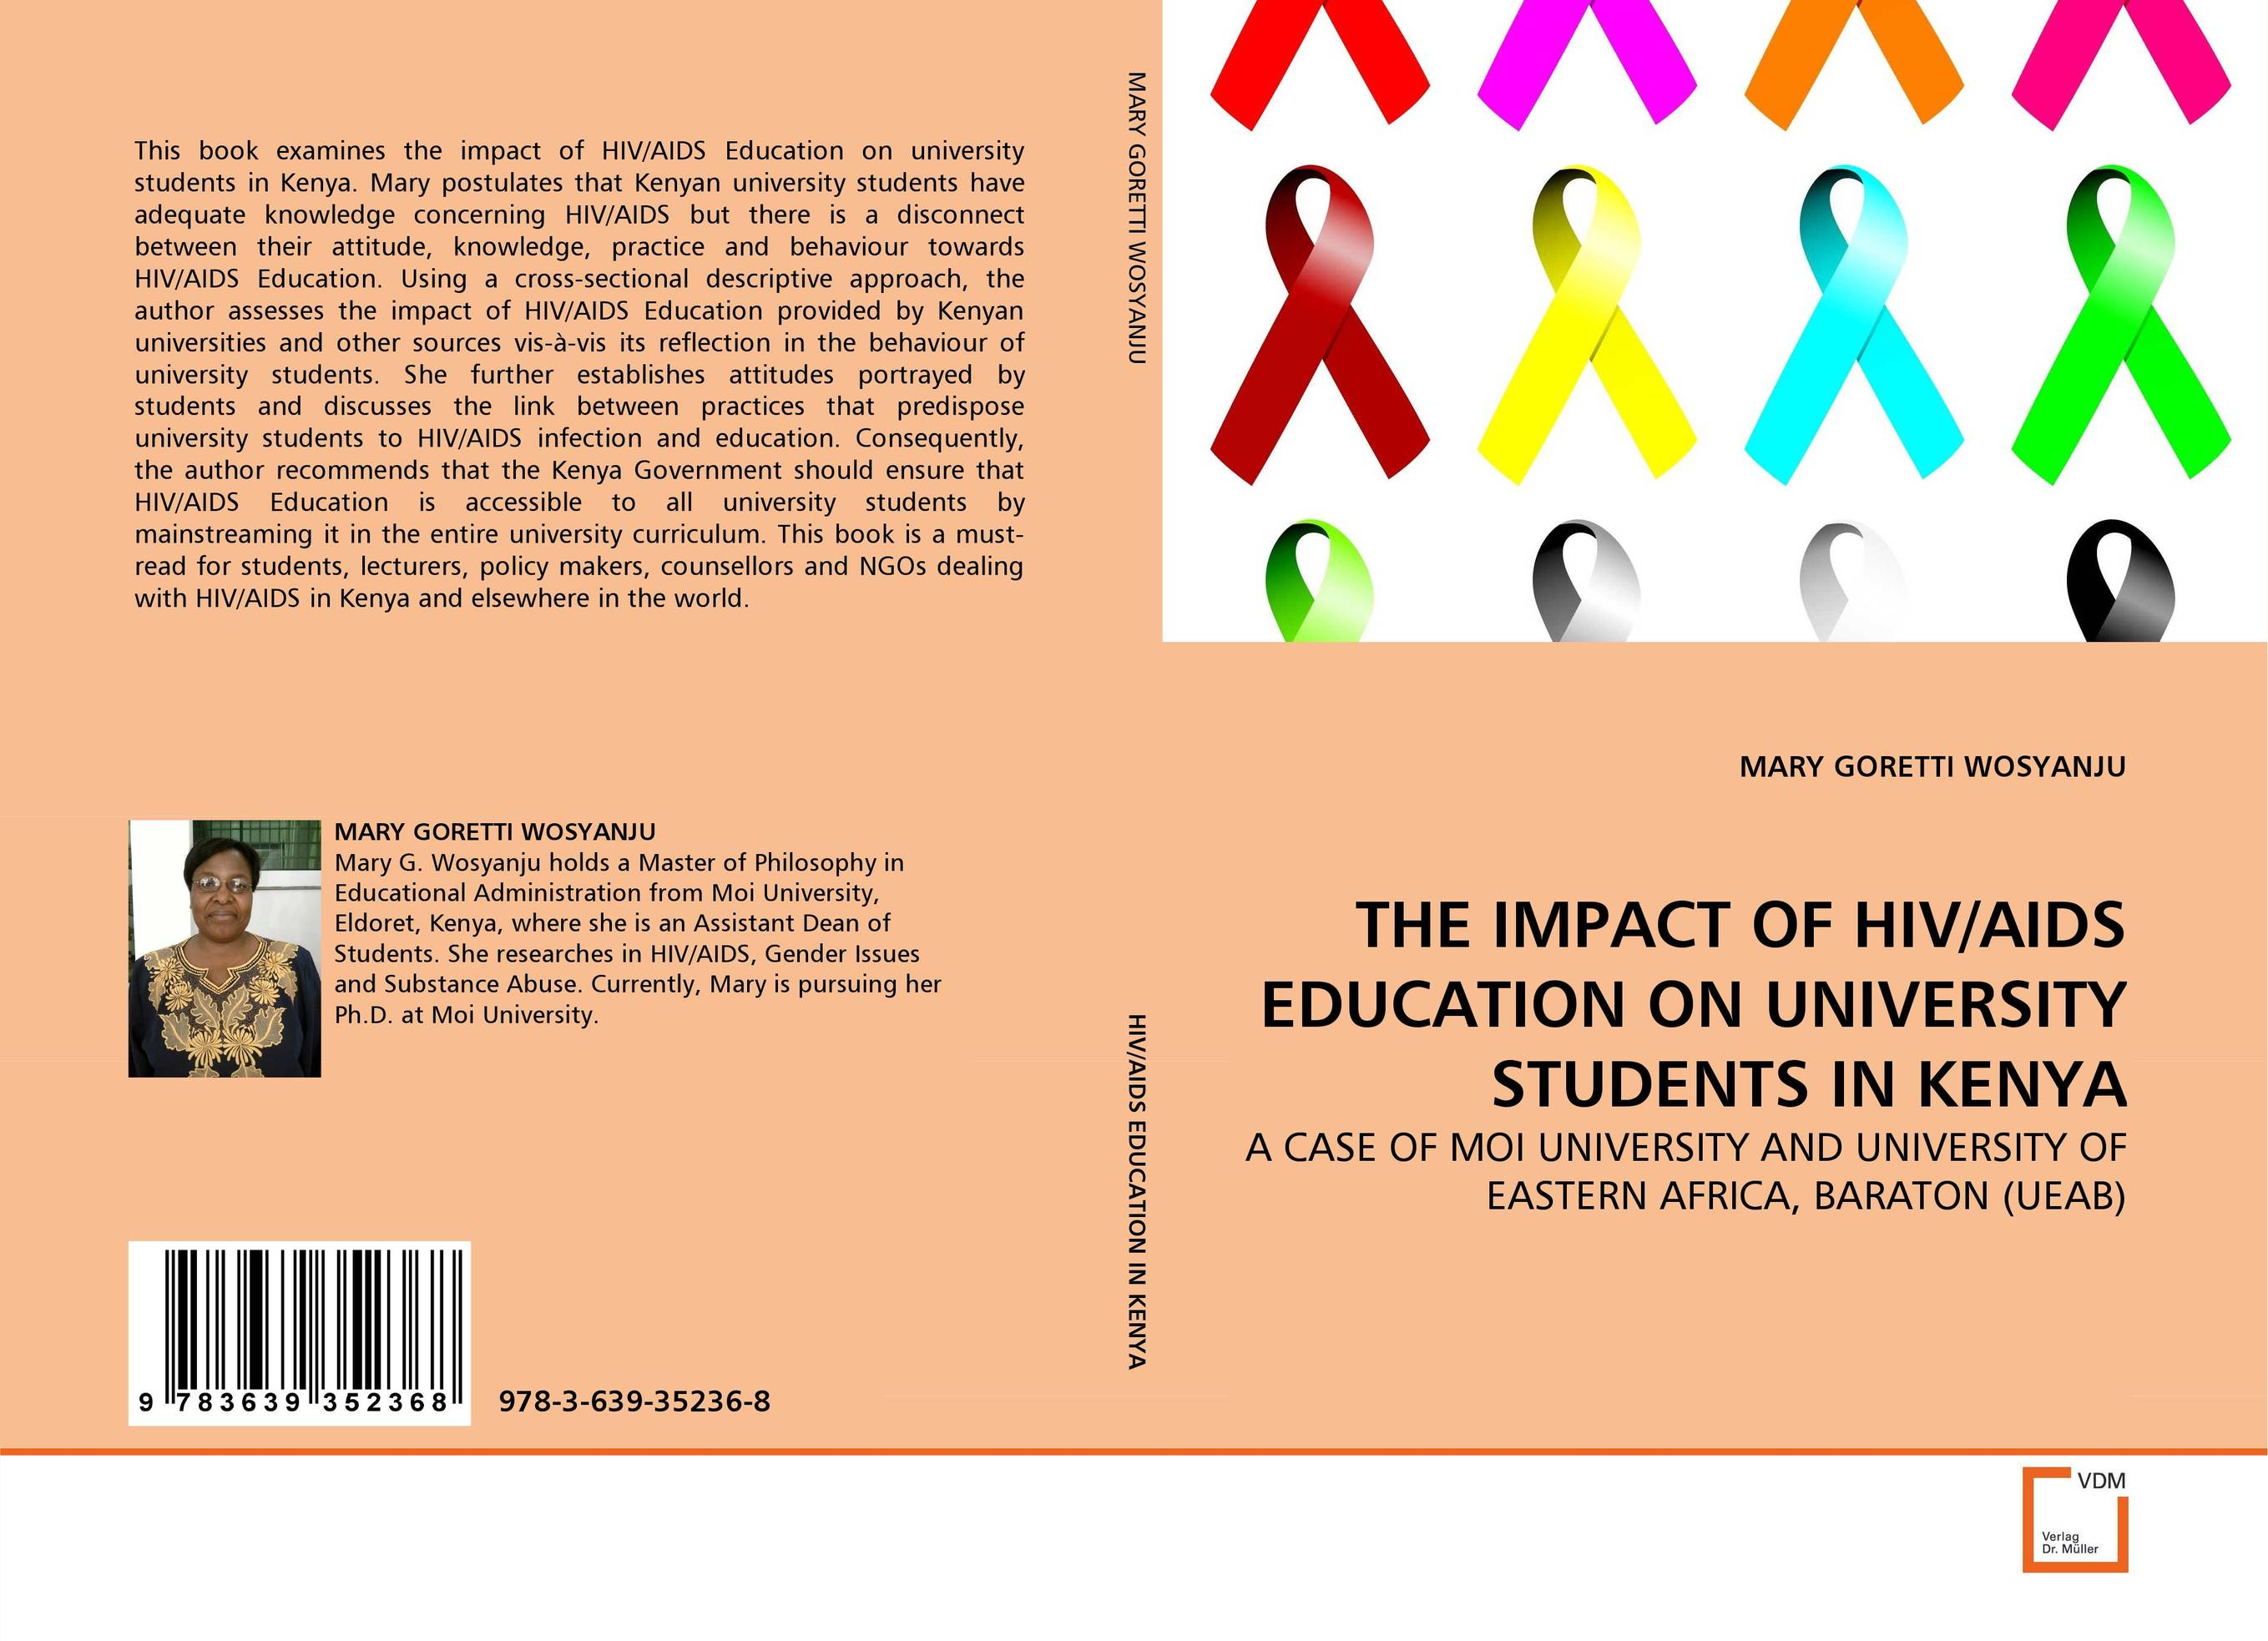 THE IMPACT OF HIV/AIDS EDUCATION ON UNIVERSITY STUDENTS IN KENYA an overview on hiv aids